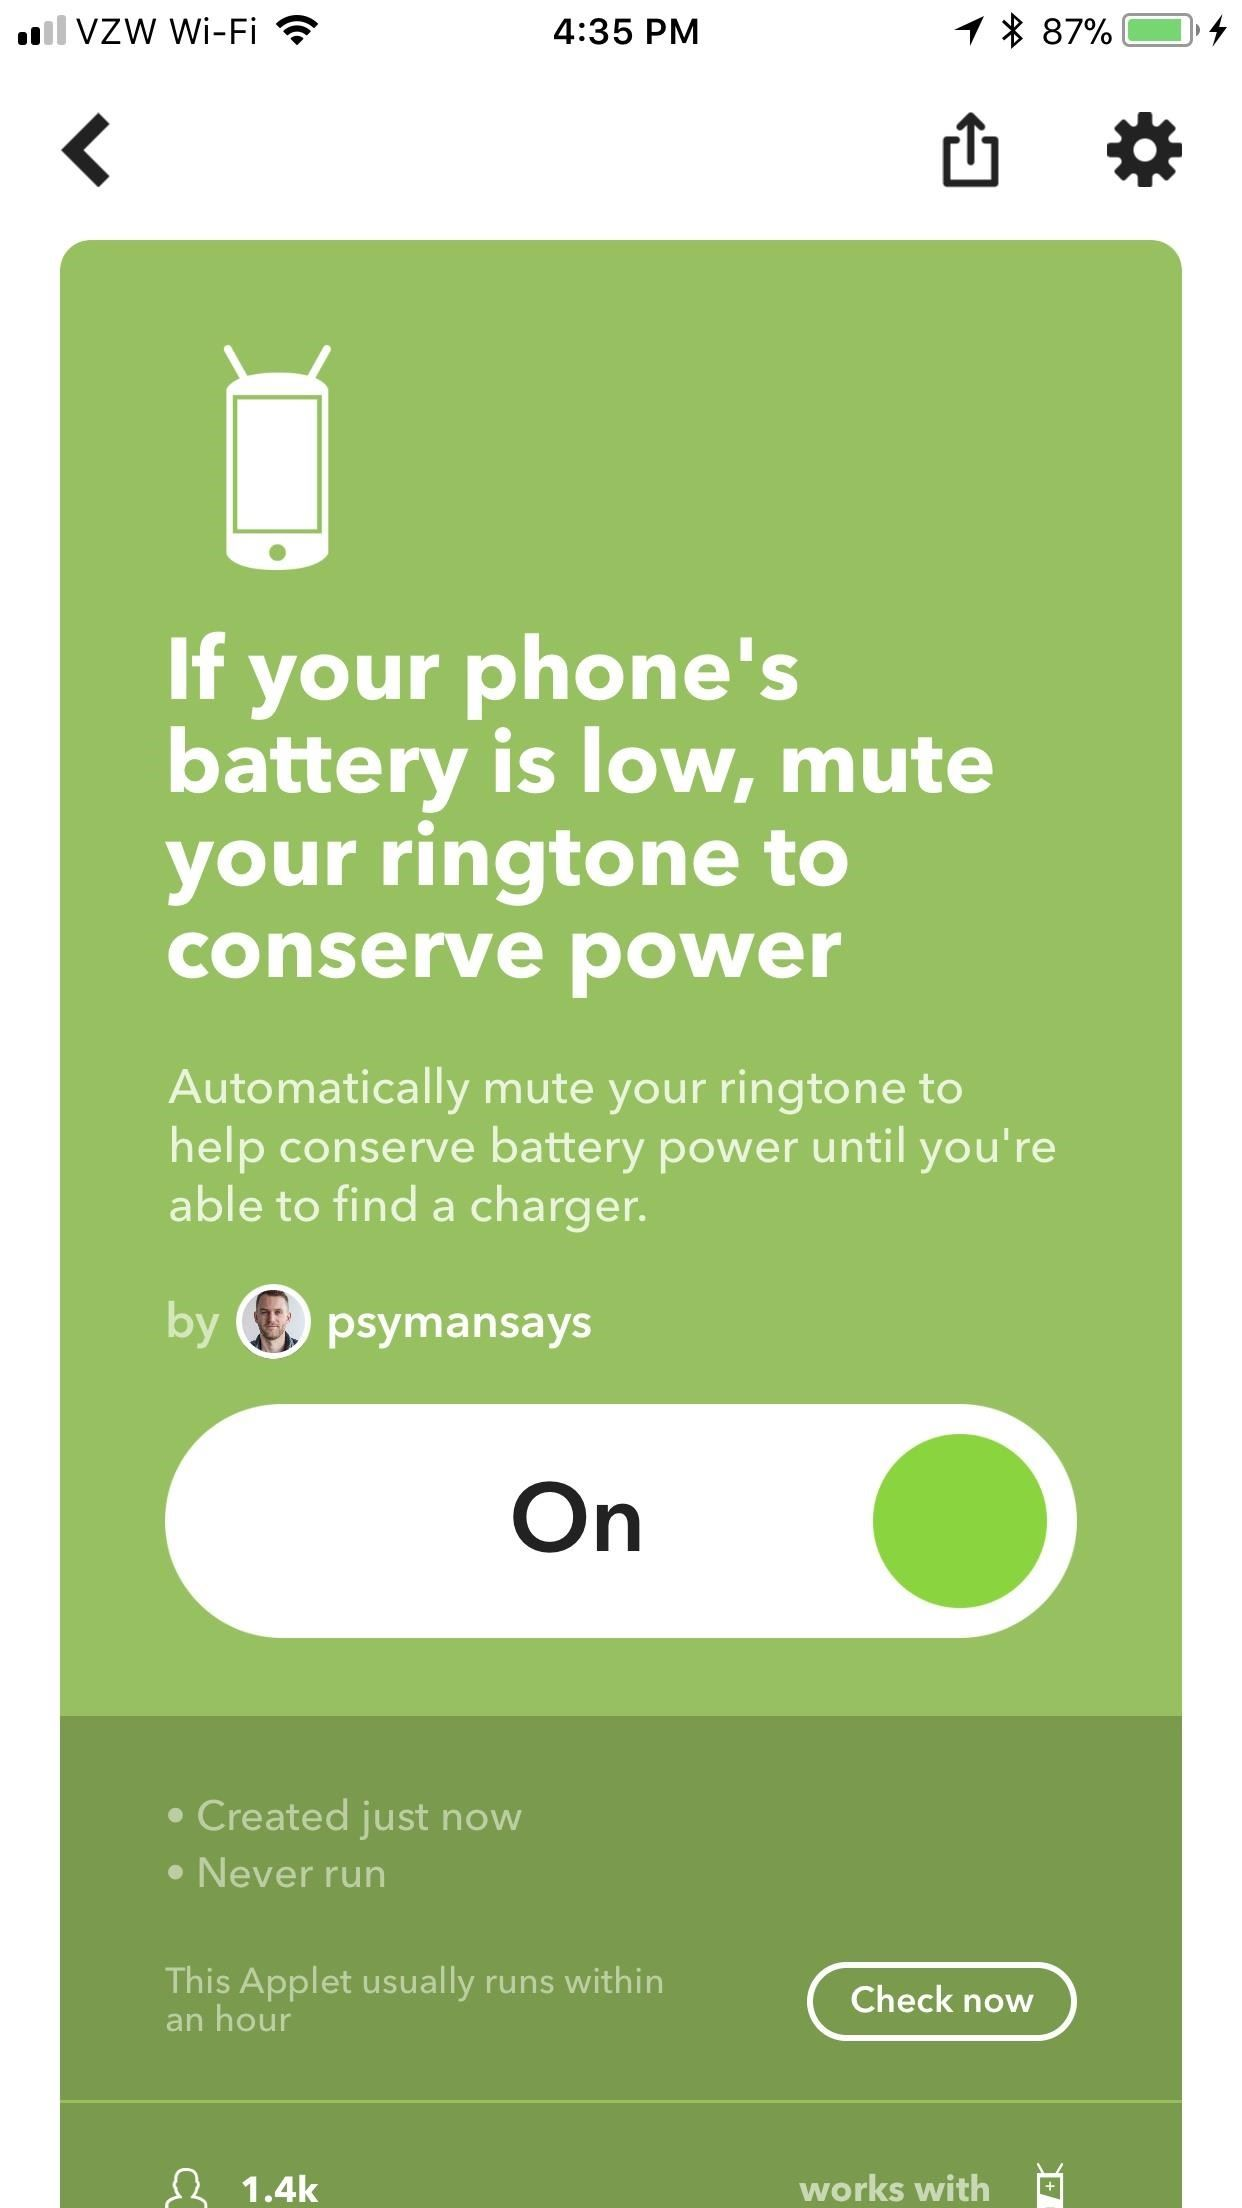 IFTTT 101: 5 Applets That Will Help Save Your Phone's Battery